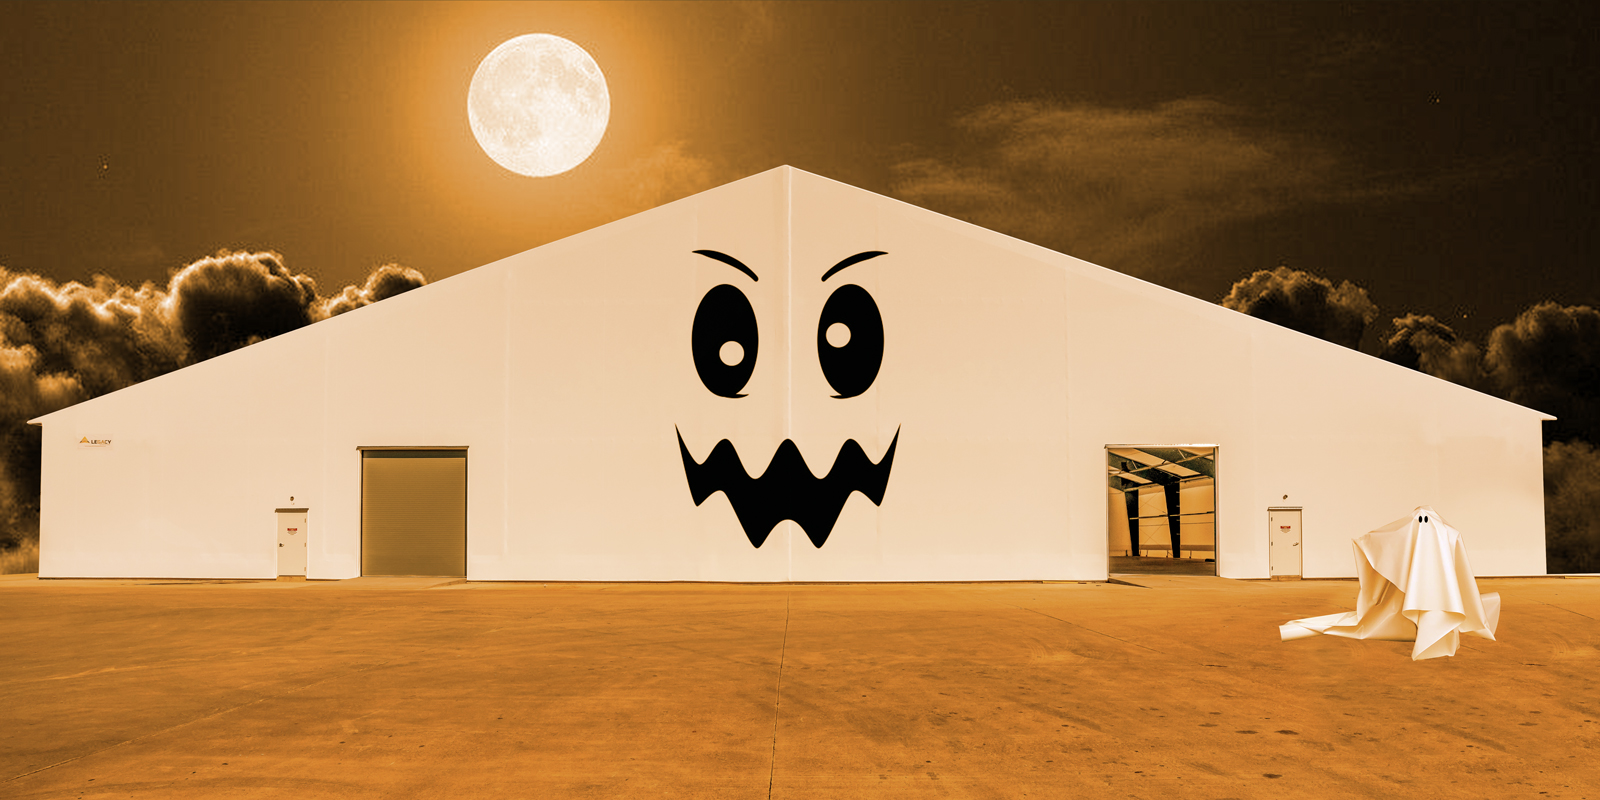 Tension Fabric Structures: Ghost Stories